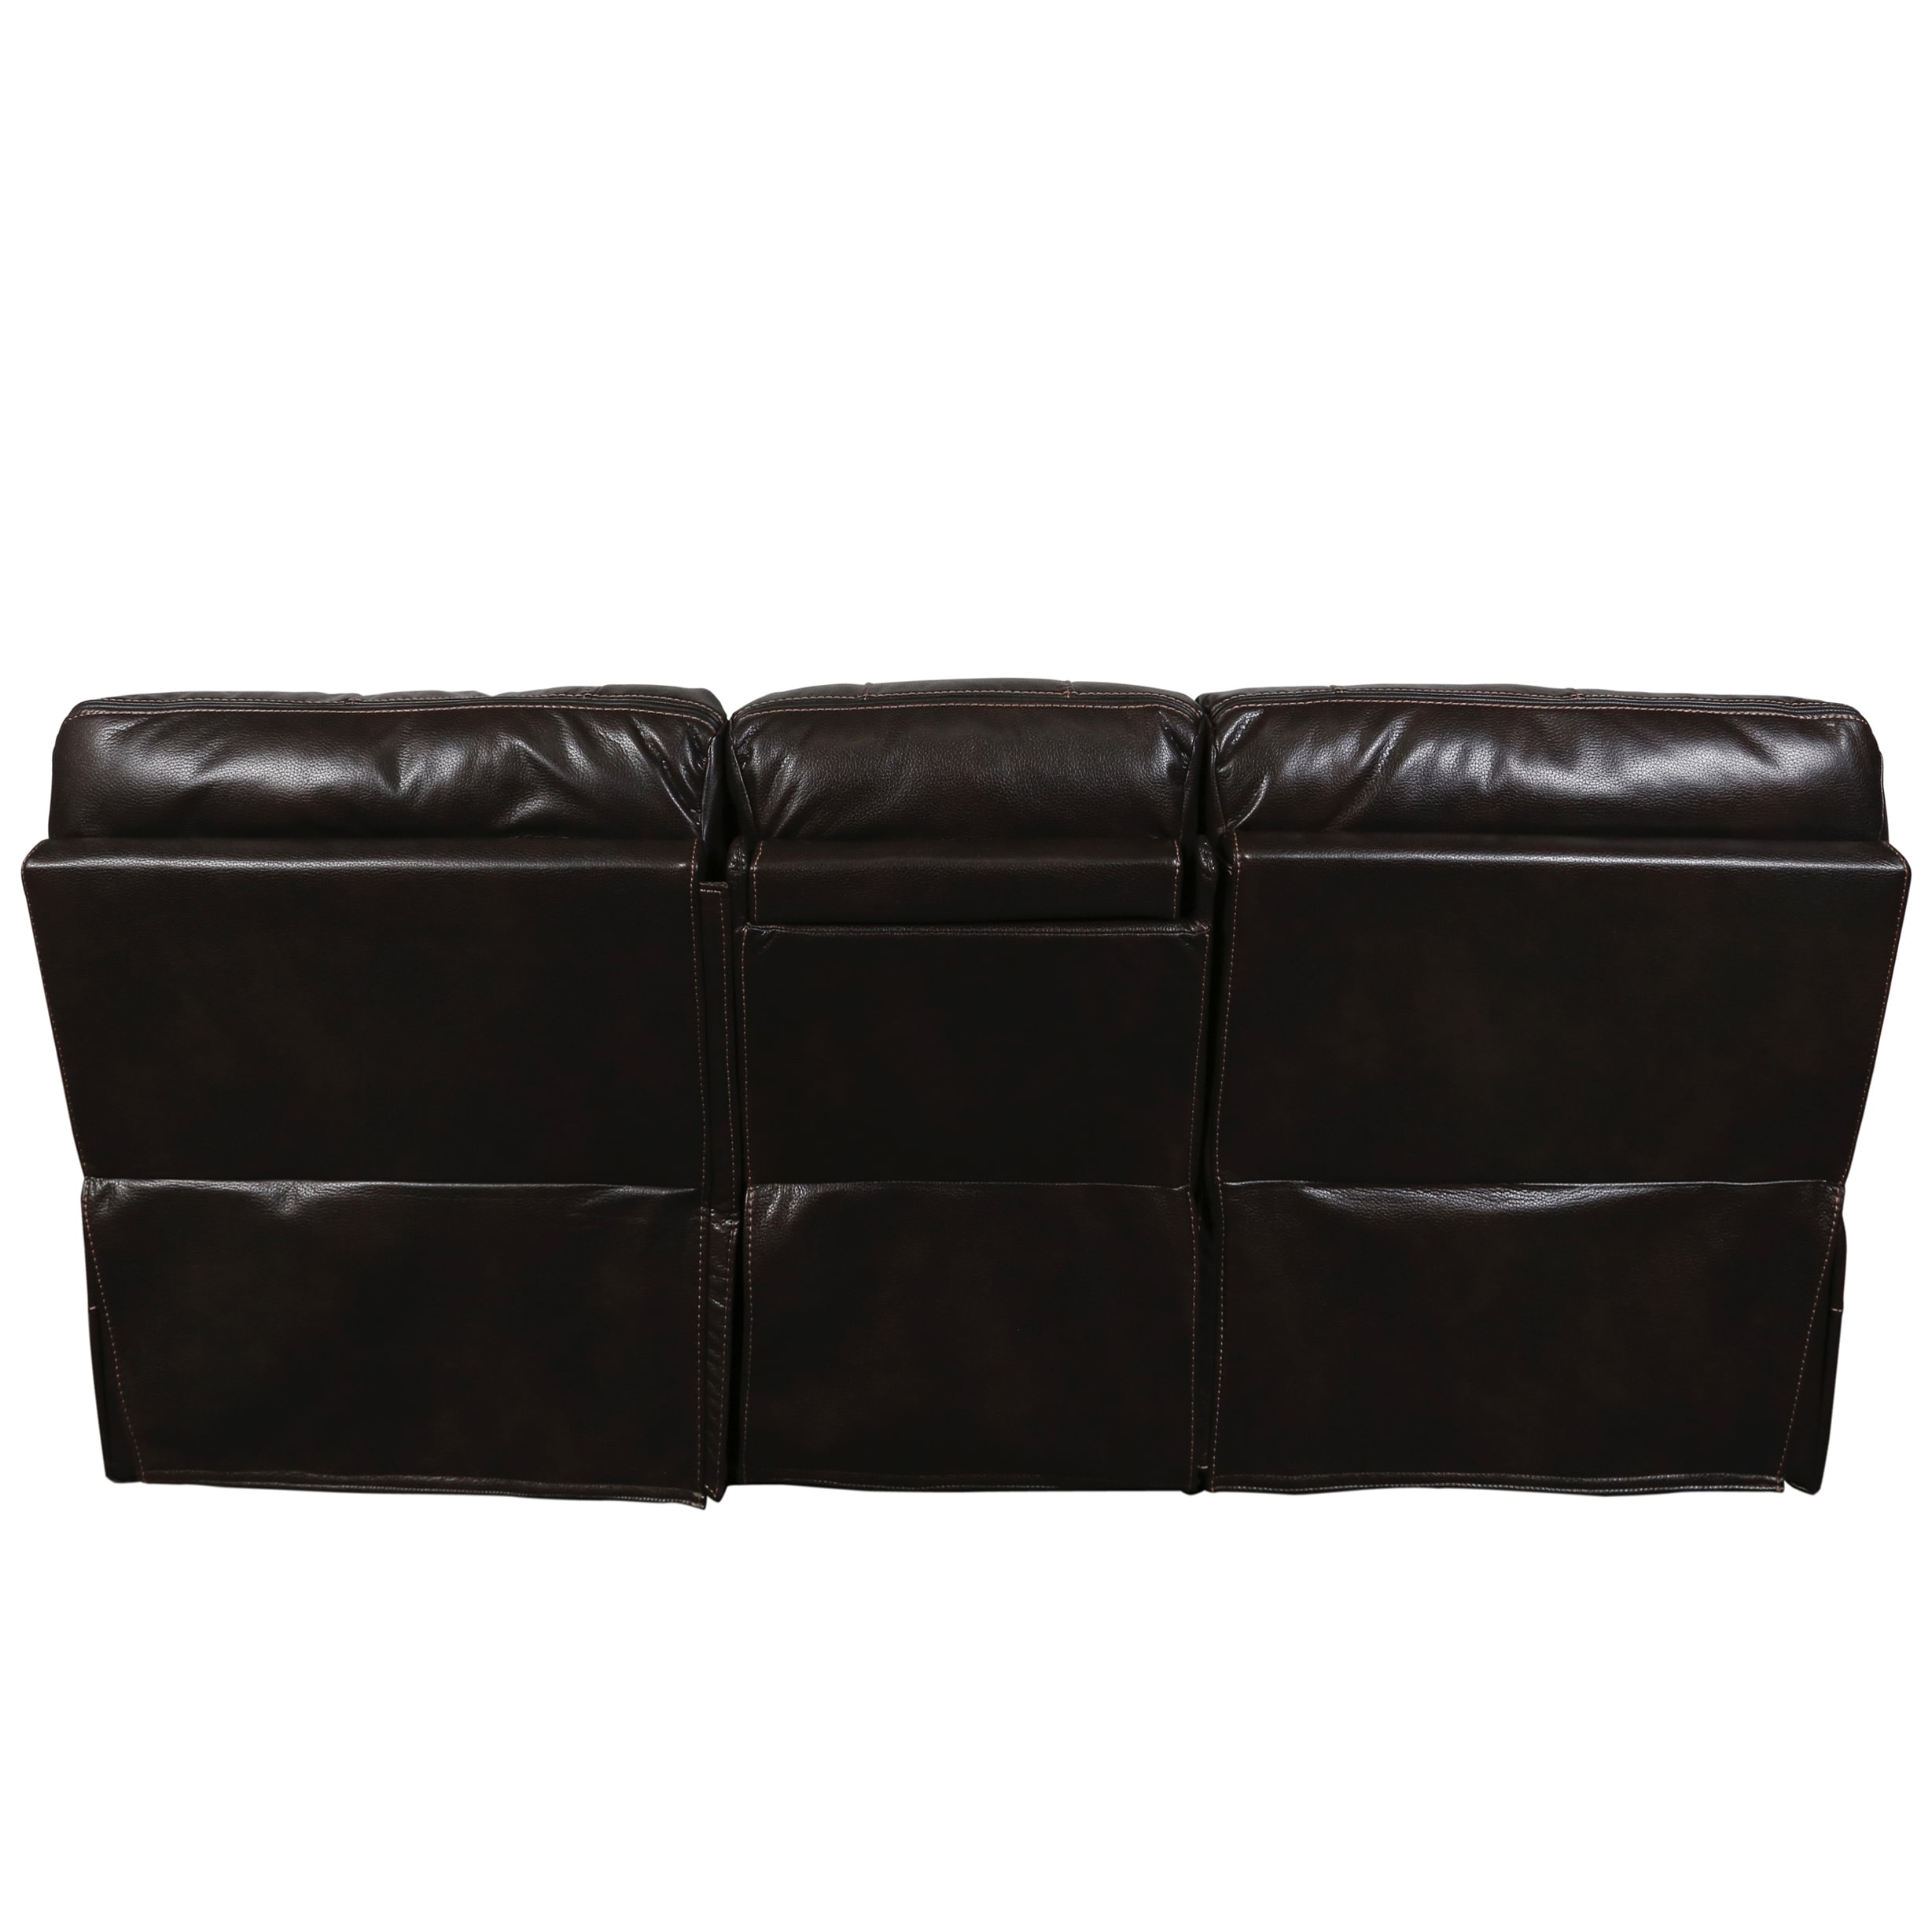 Shop Porter Alameda Chocolate Brown Leatherlike Dual Reclining Sofa